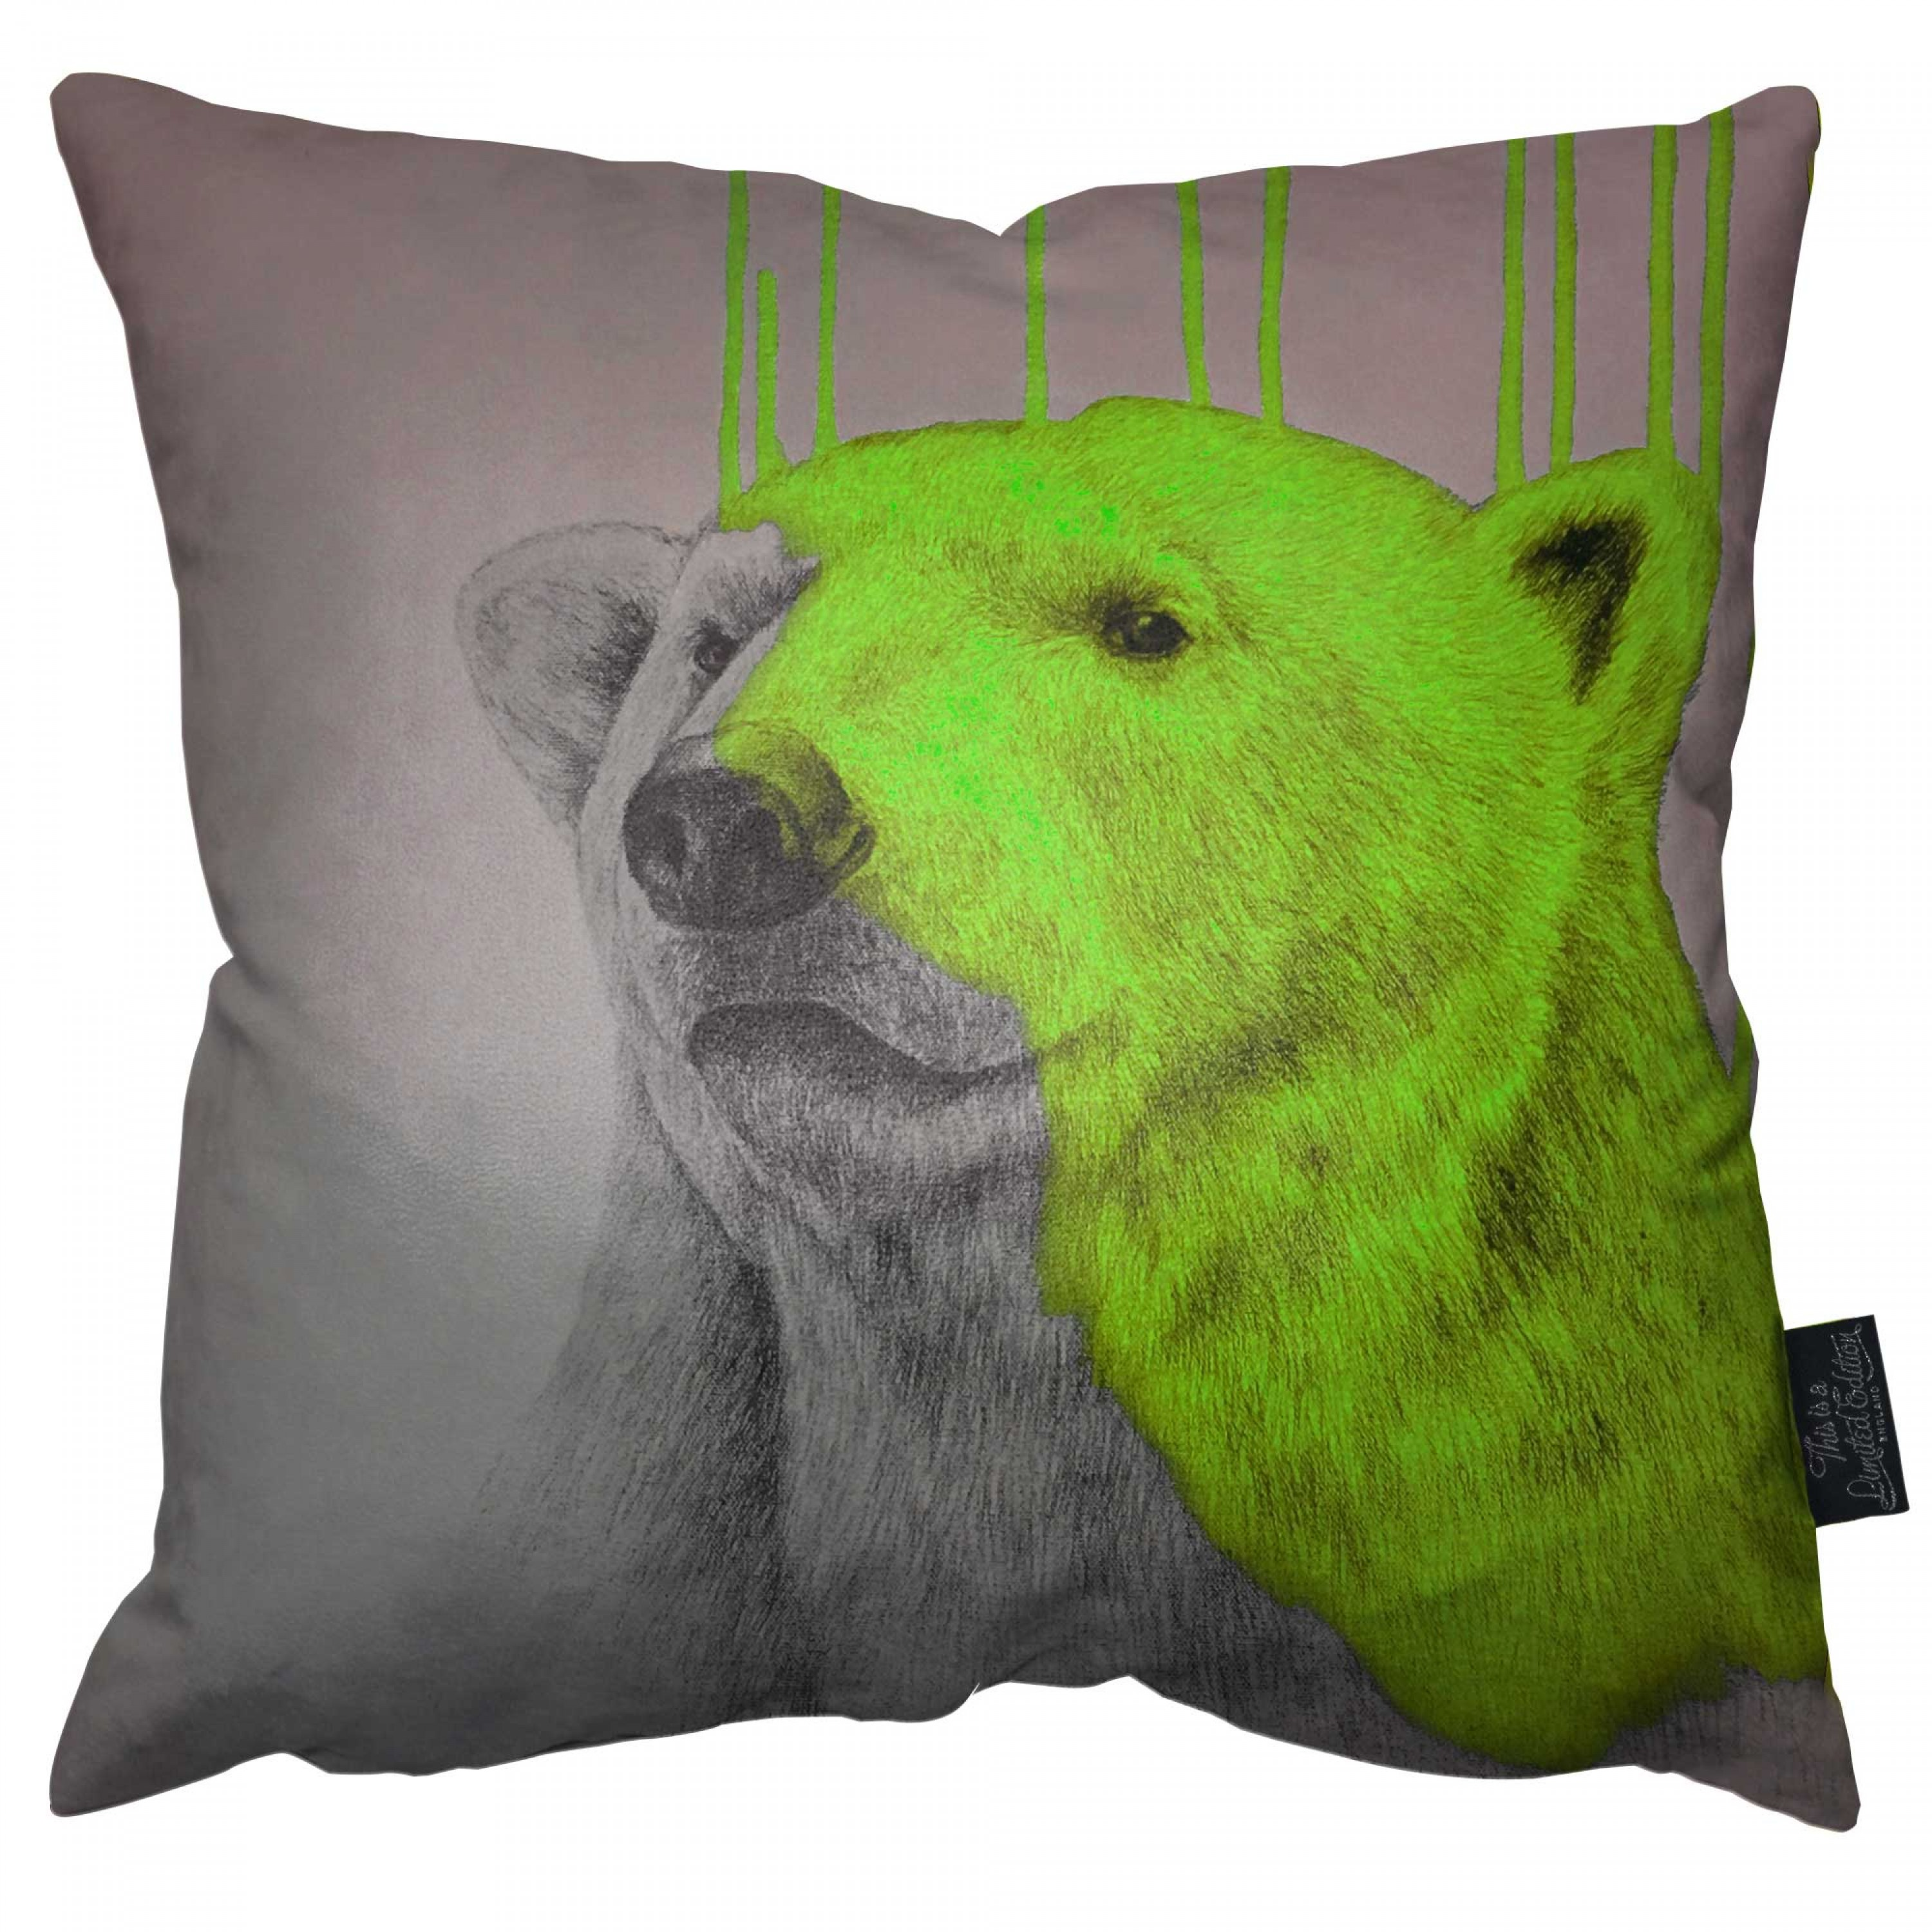 Hey Polar Bear - Green Pillow